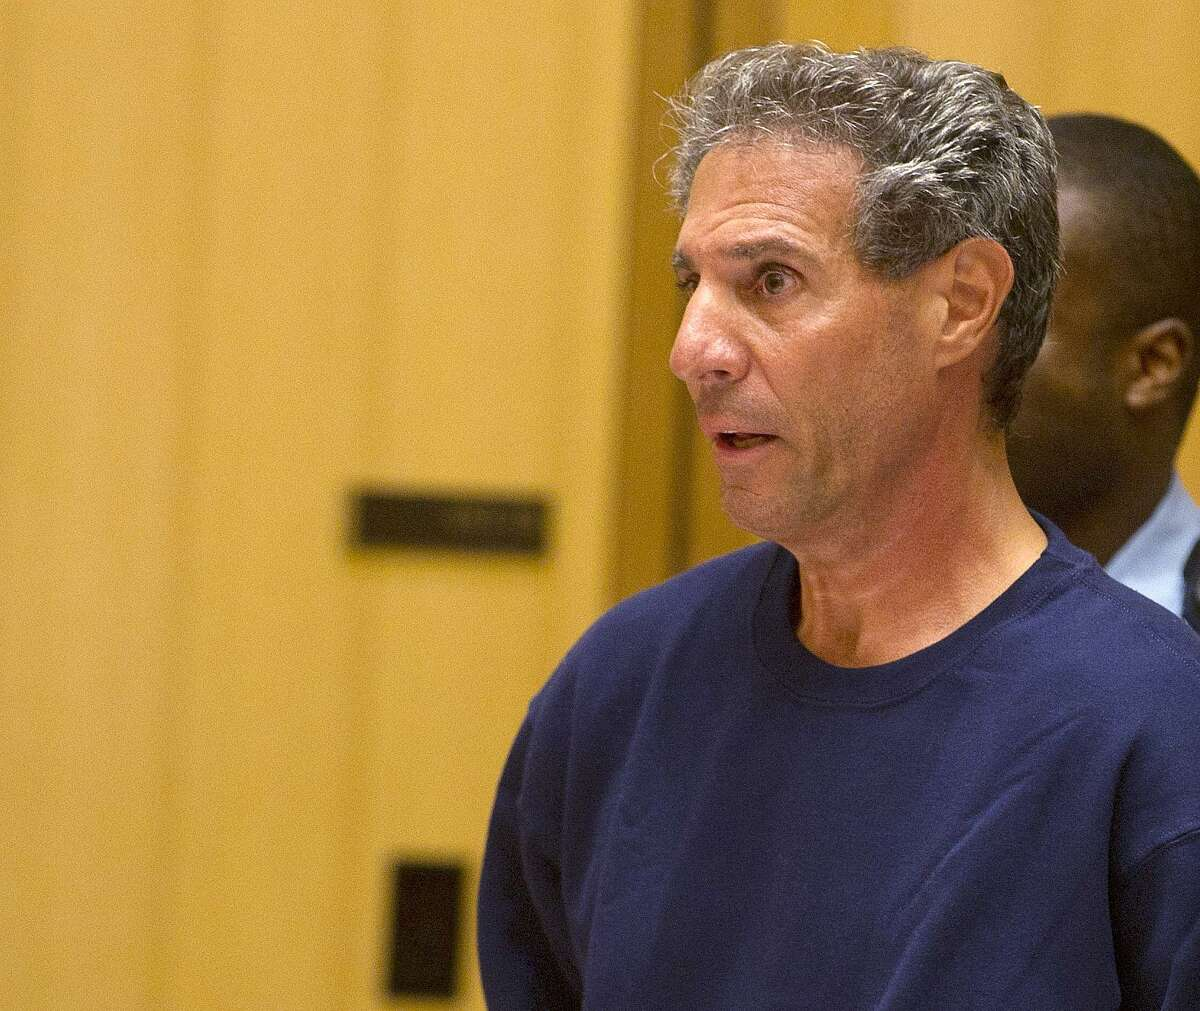 Michael DeMaio, 55, is arraigned on Wednesday, Sept. 11, 2013, on charges of criminal attempt at murder and first degree assault after his wife, Diane, was beaten with a baseball bat in their Greenwich, Conn., home Tuesday evening.